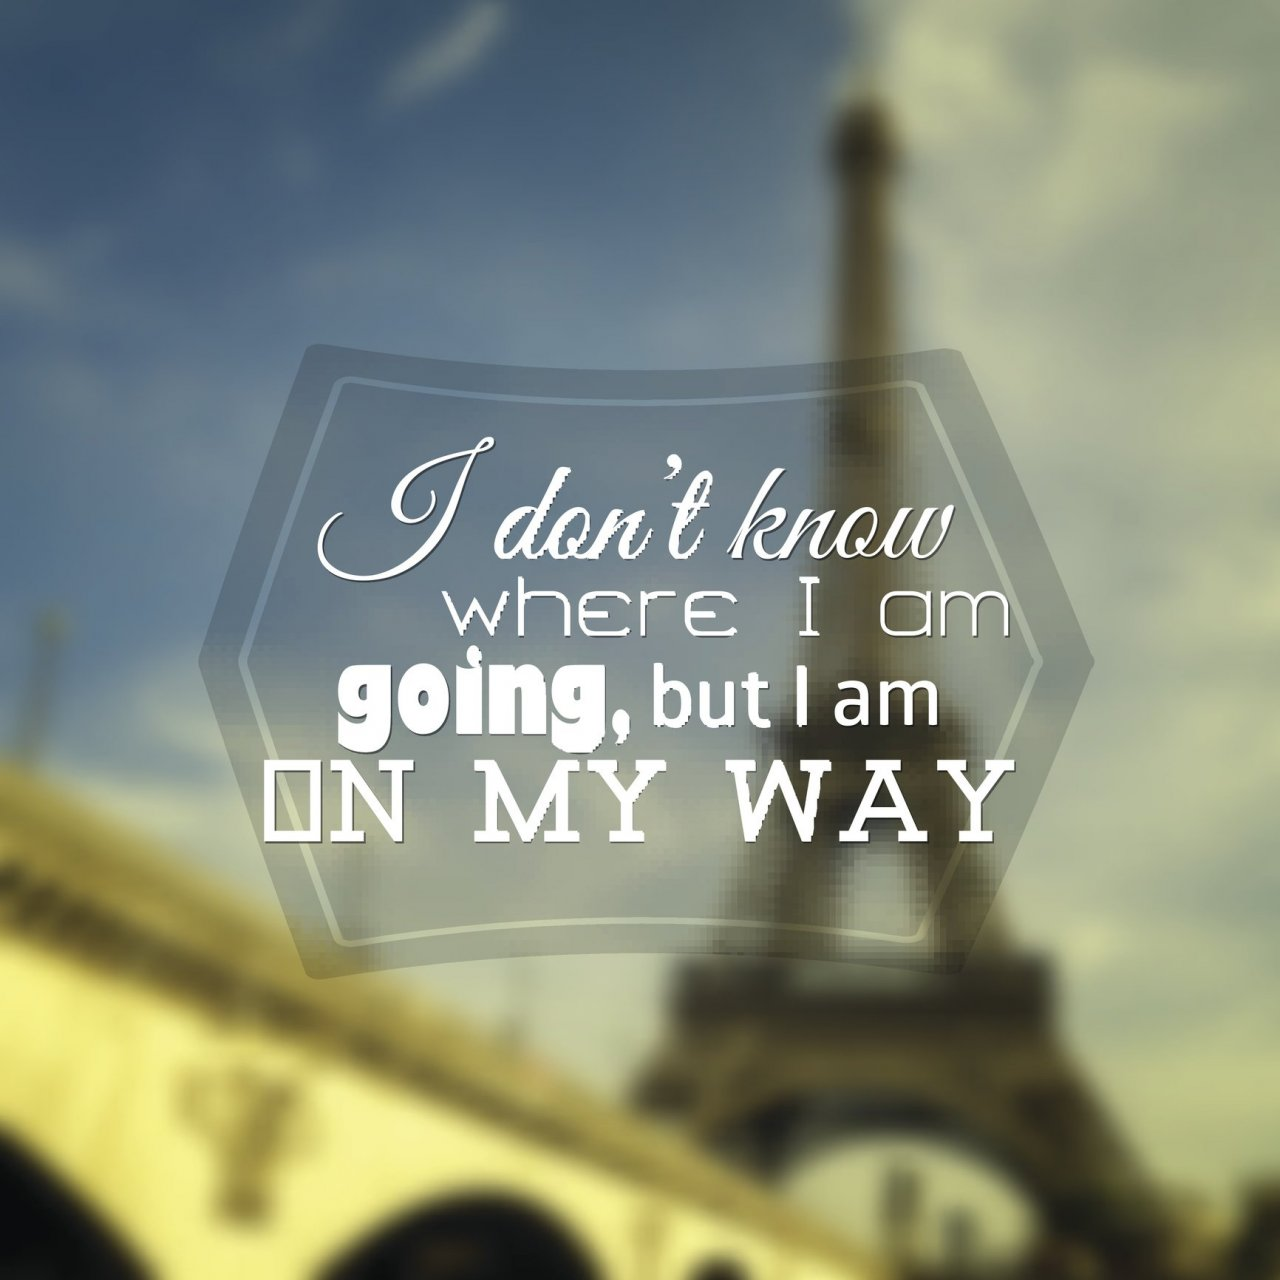 Inspiring Quotes About Travelling